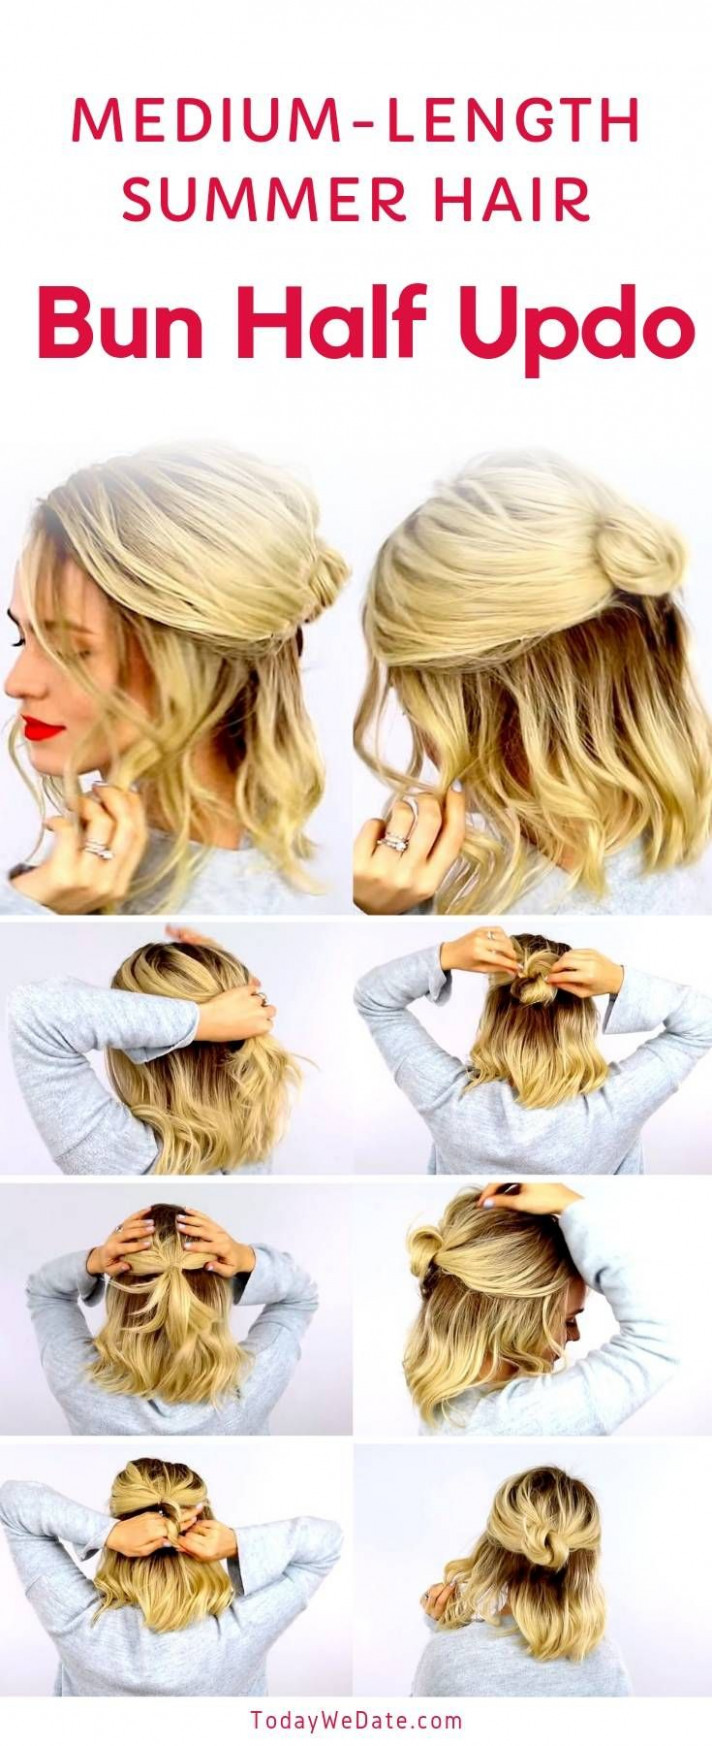 11 no heat easy summer hairstyles anyone can pull off in 11 minutes